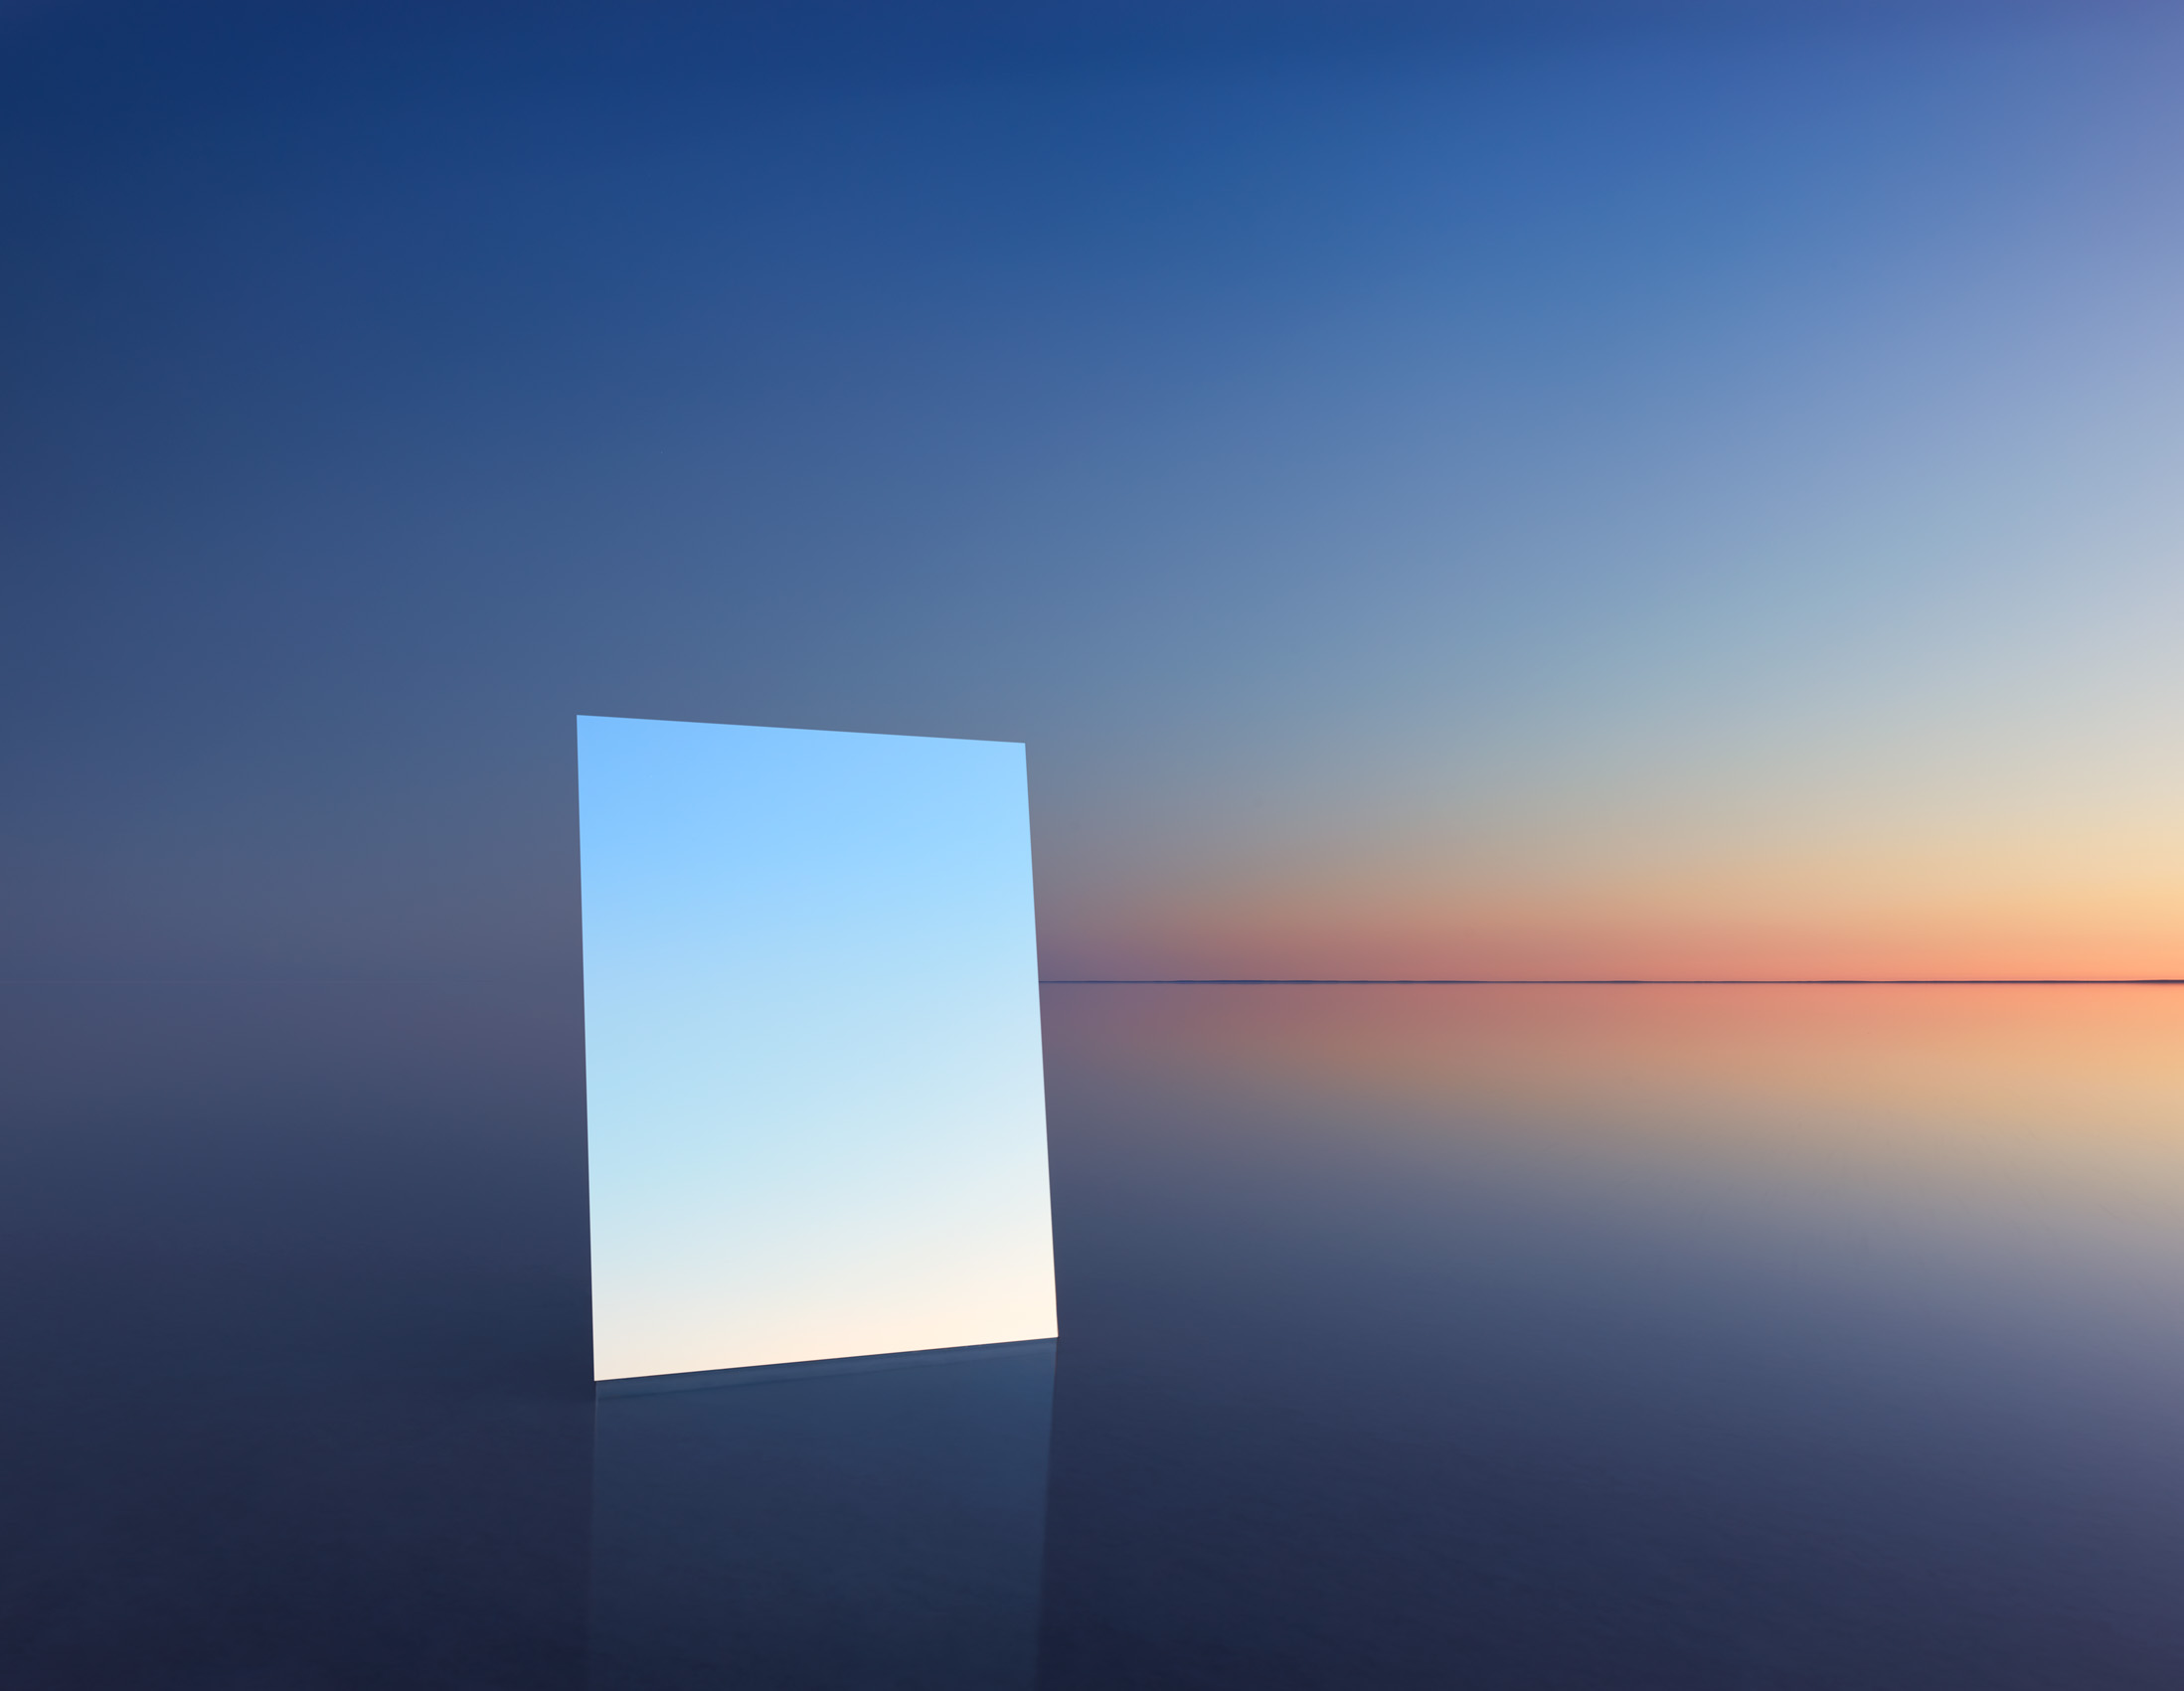 This exhibition features stunning images of Australia's Lake Eyre reflected in mirrors - Lonely Planet Travel news. Article by James Gabriel Martin. Photographs by Murray Fredericks